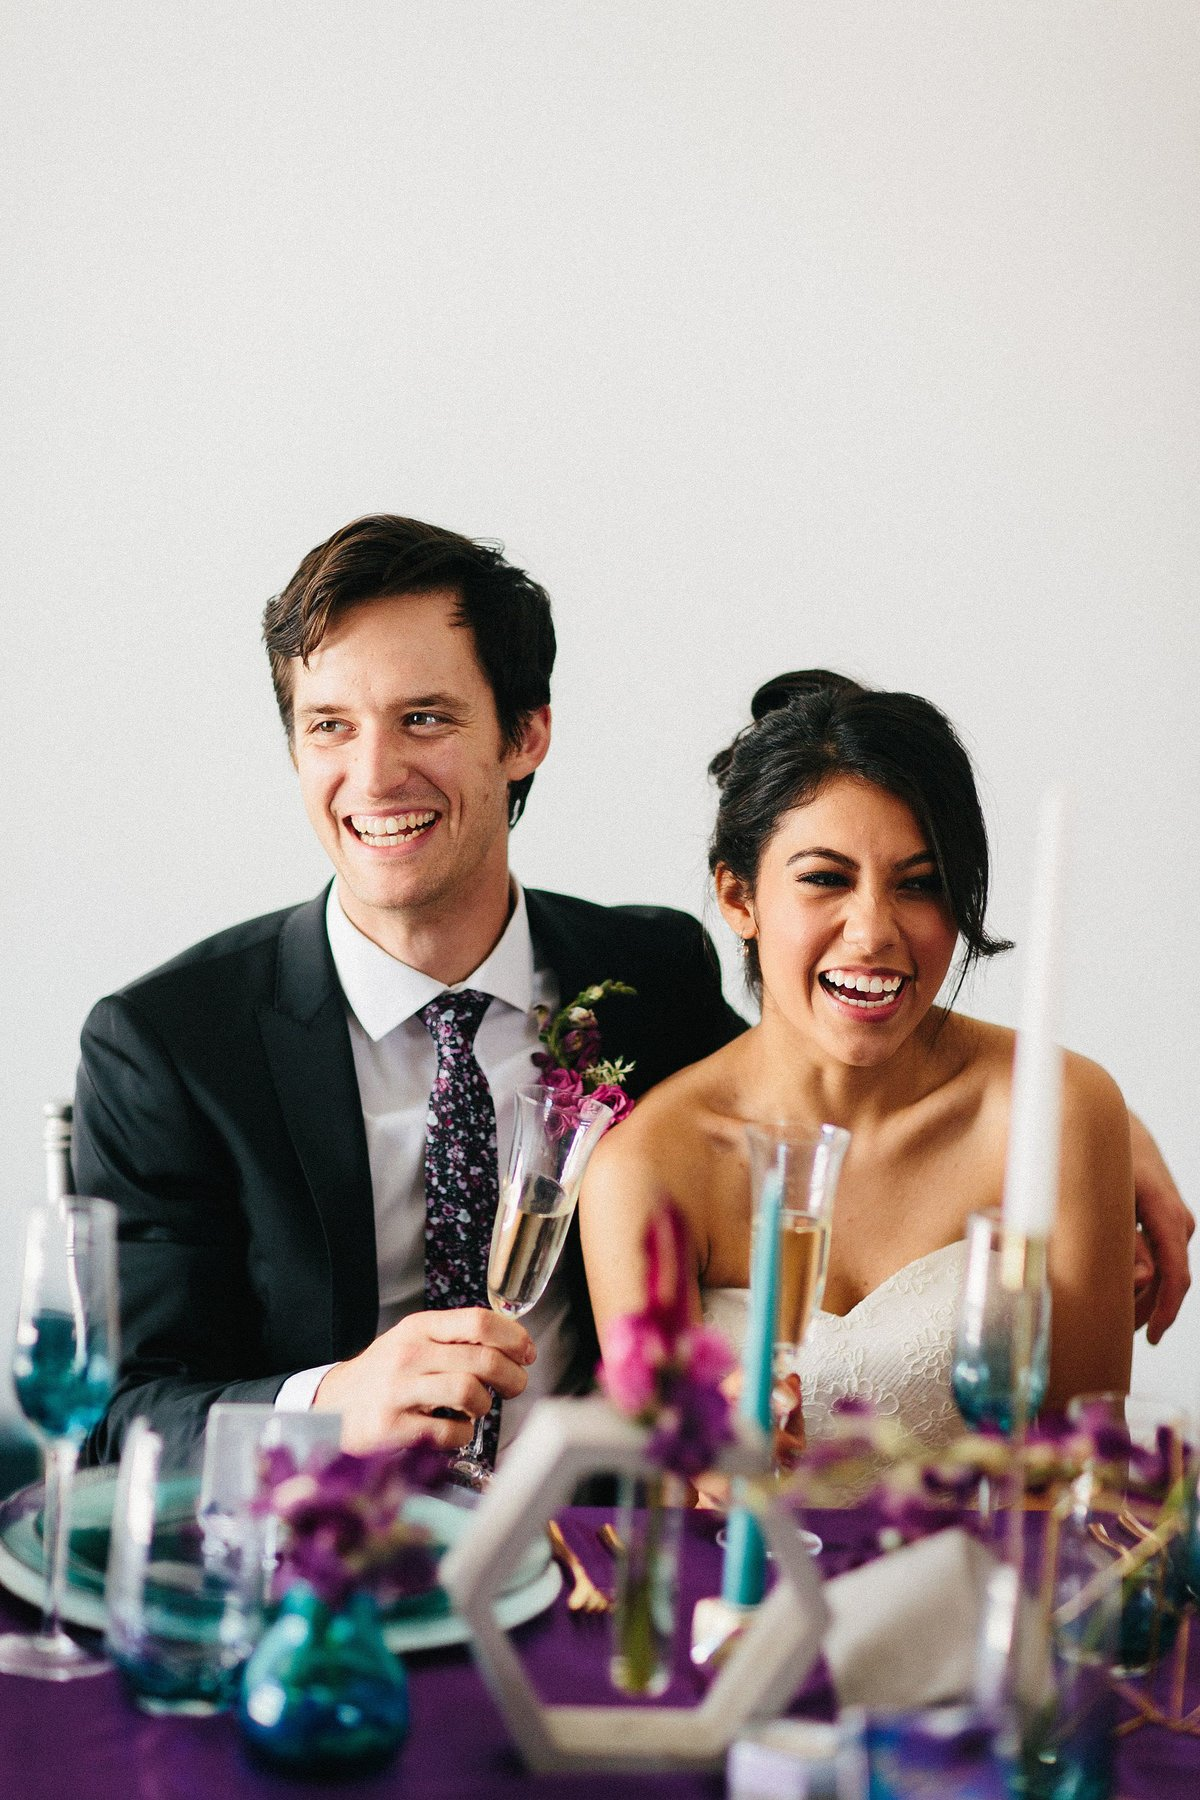 Smiling bride and groom at purple and teal wedding reception at Factory Atlanta